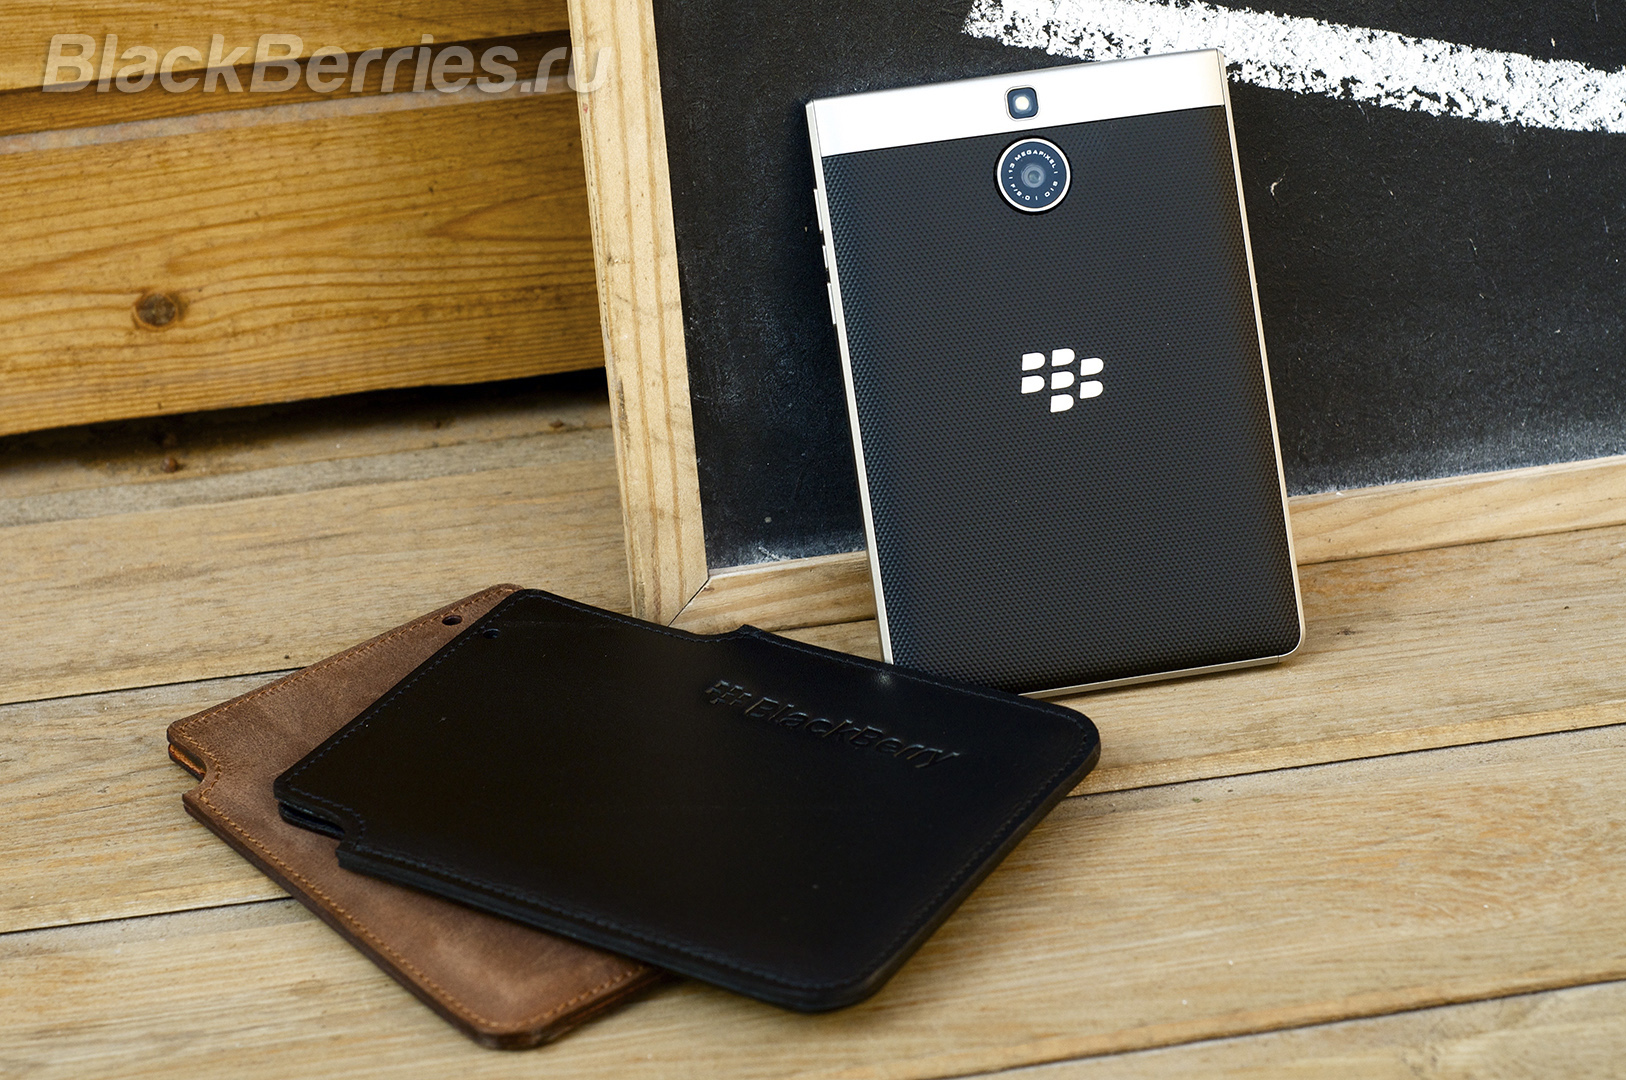 BlackBerry-Passport-Silver-Cases-28